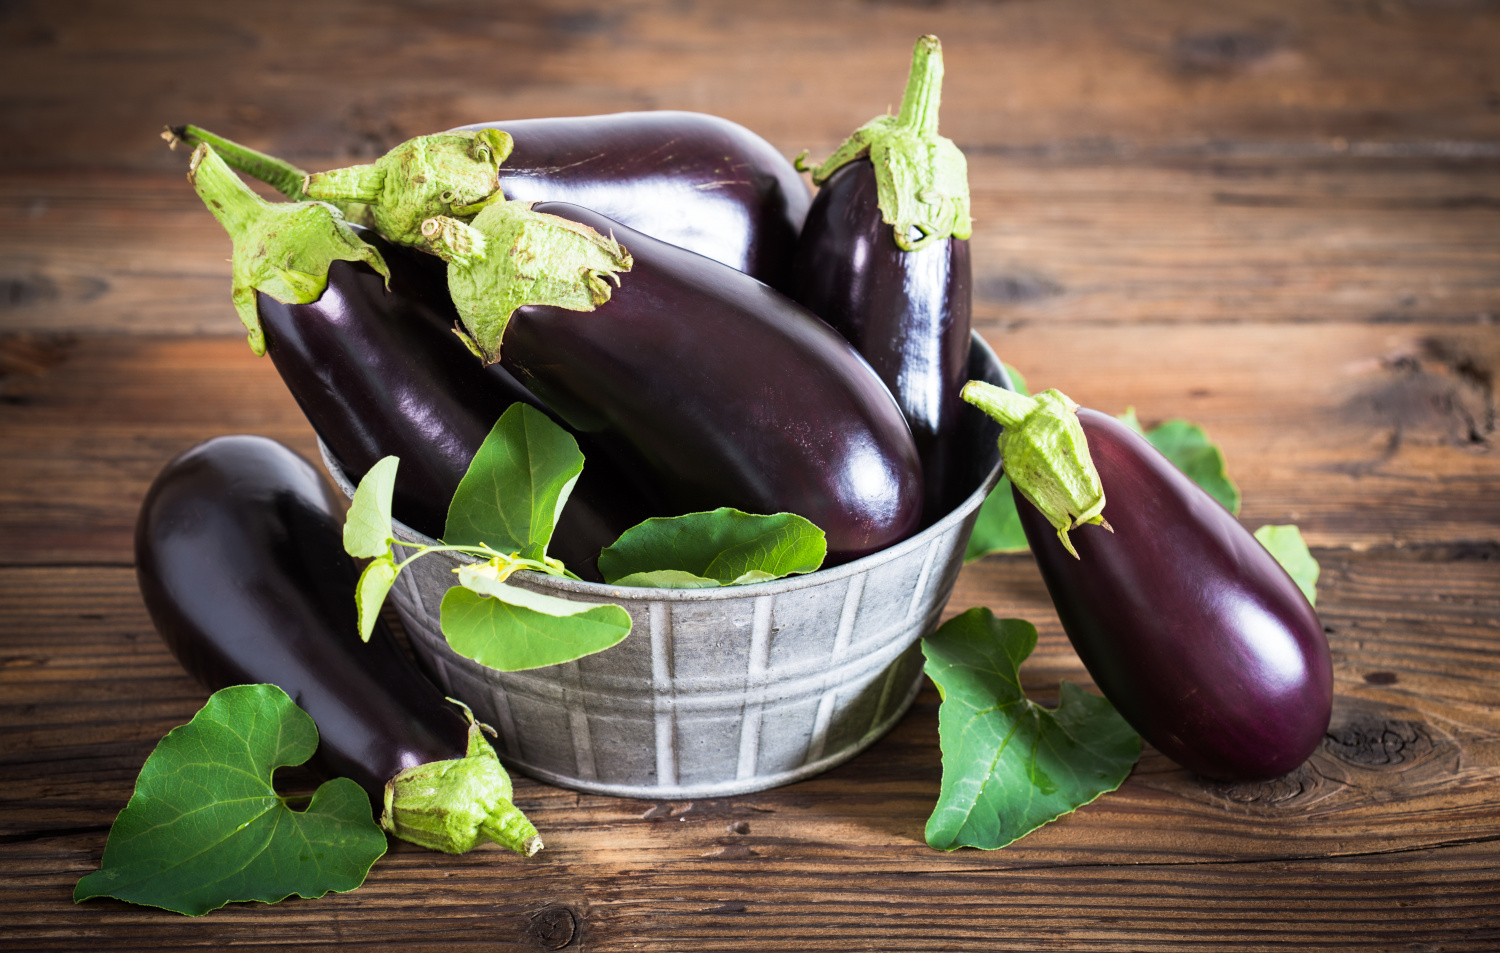 Eggplant - veggie of the month